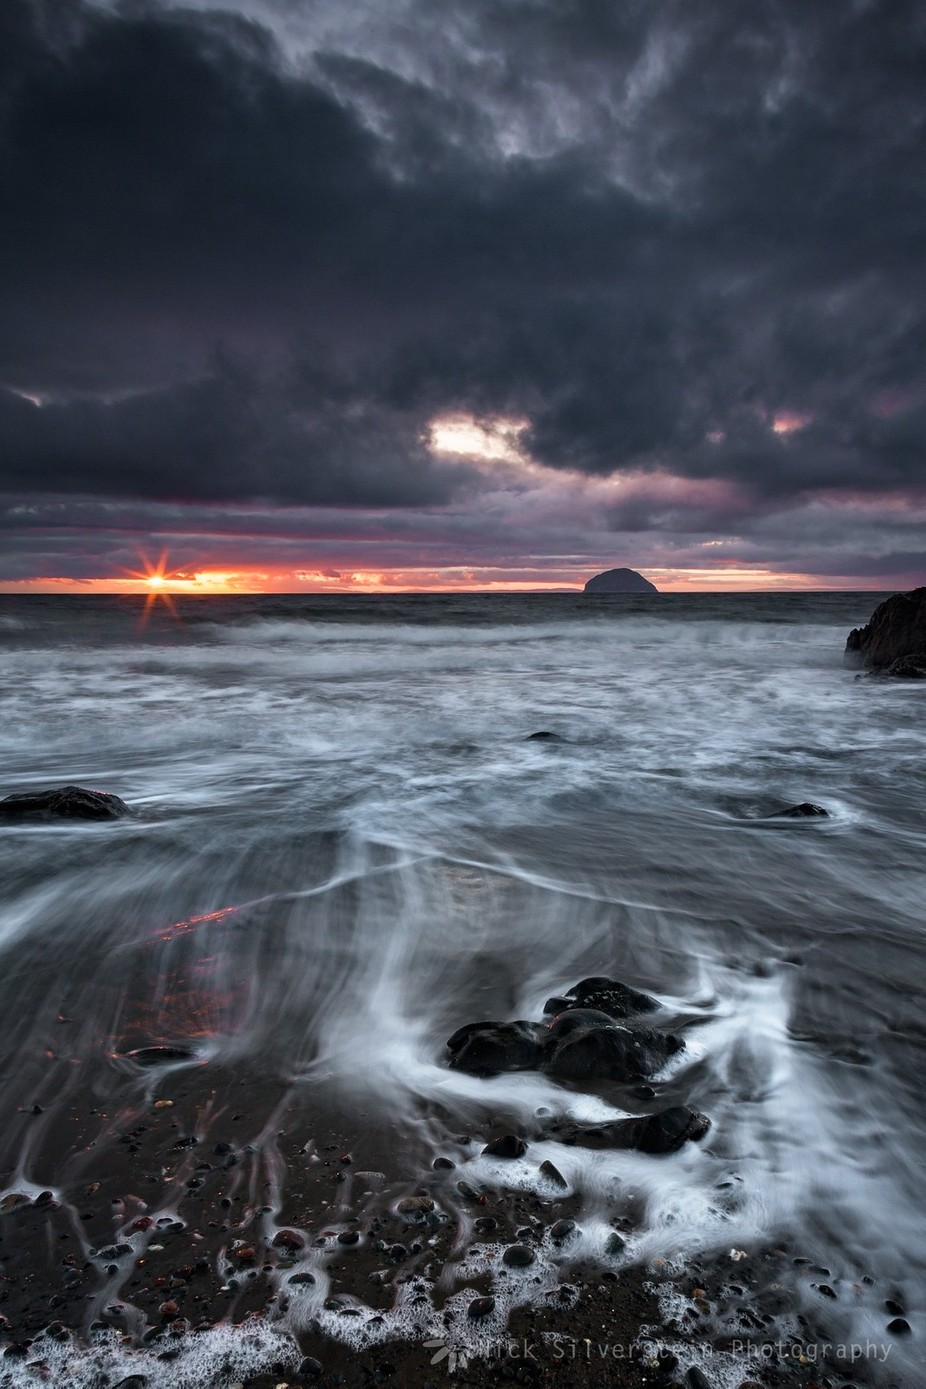 Ailsa Craig by NickSilverstein - Flares 101 Photo Contest